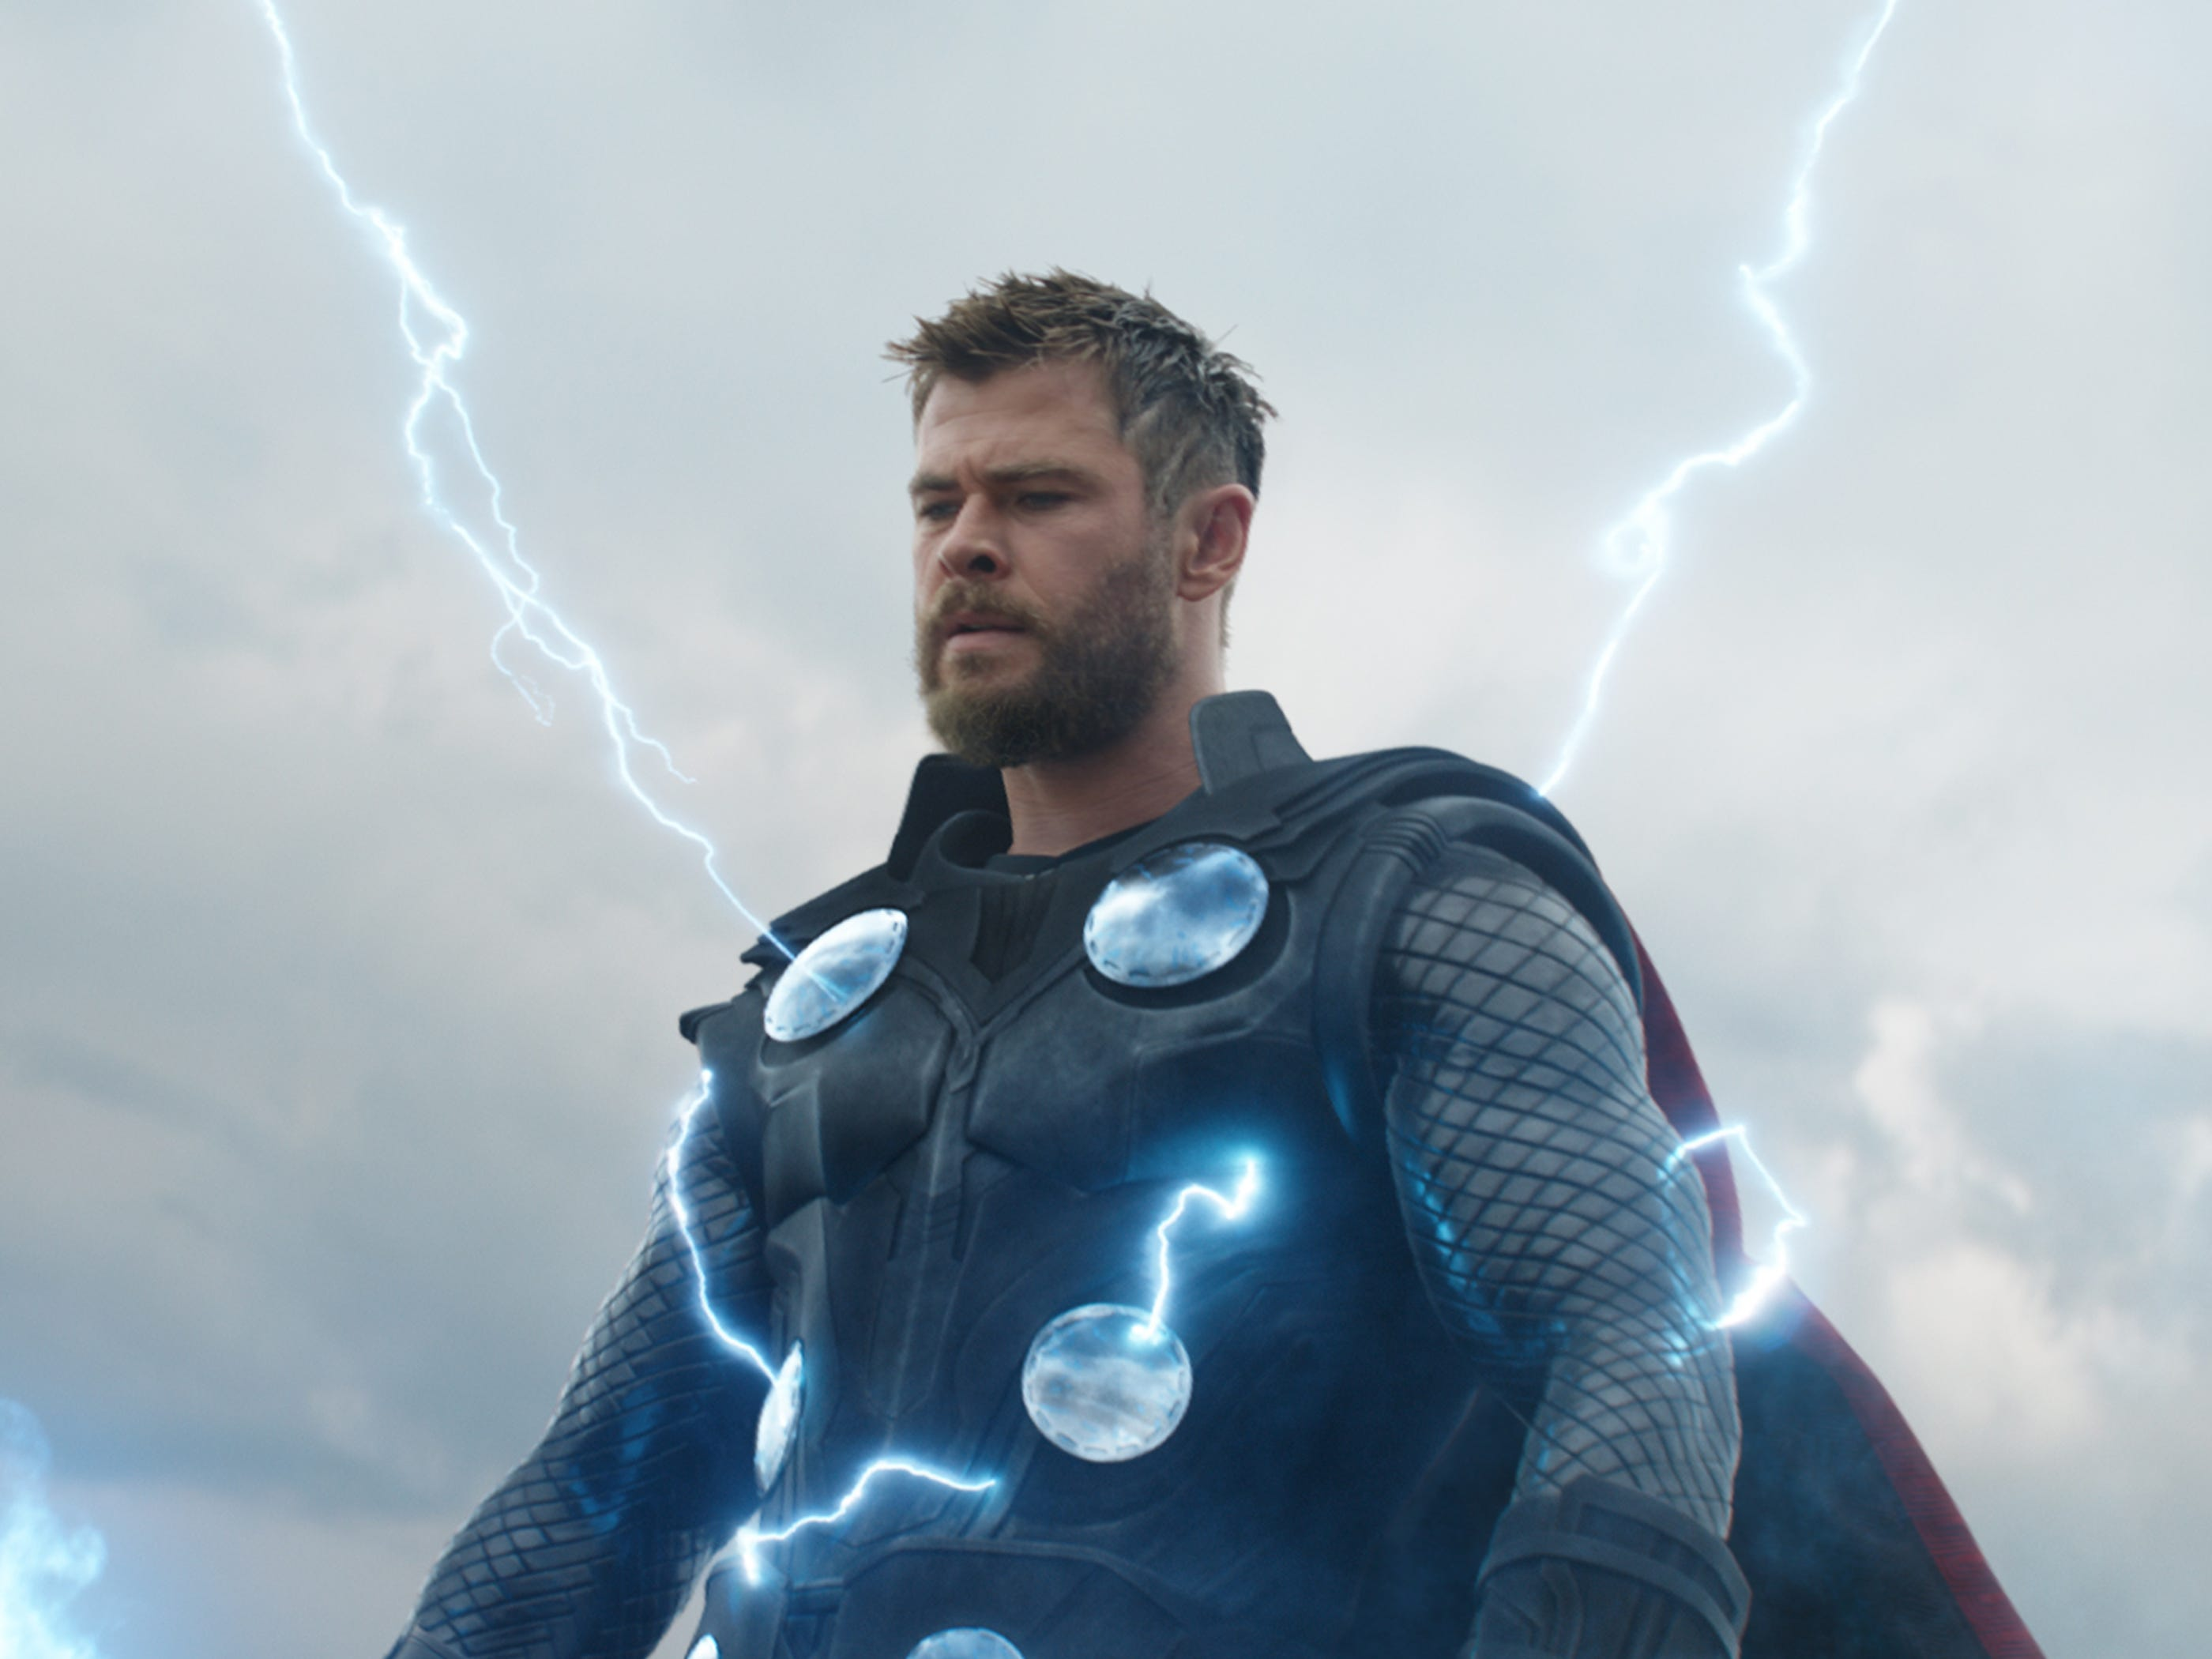 'One for the ages': First reactions to 'Avengers: Endgame' hail Marvel 'epic'